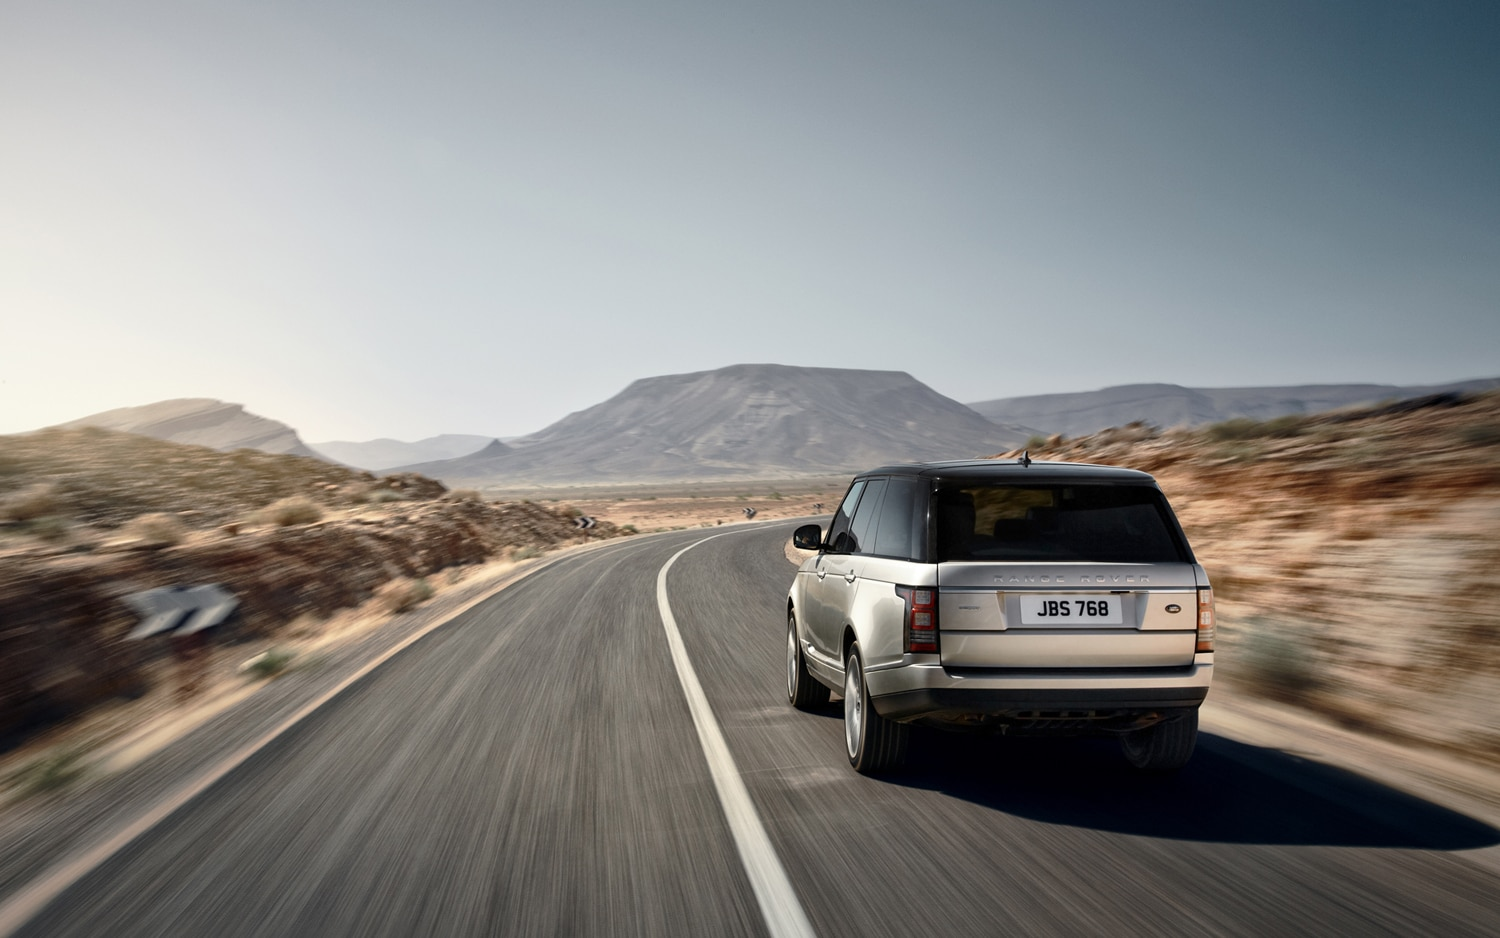 2013 Land Rover Range Rover Rear End In Motion 2